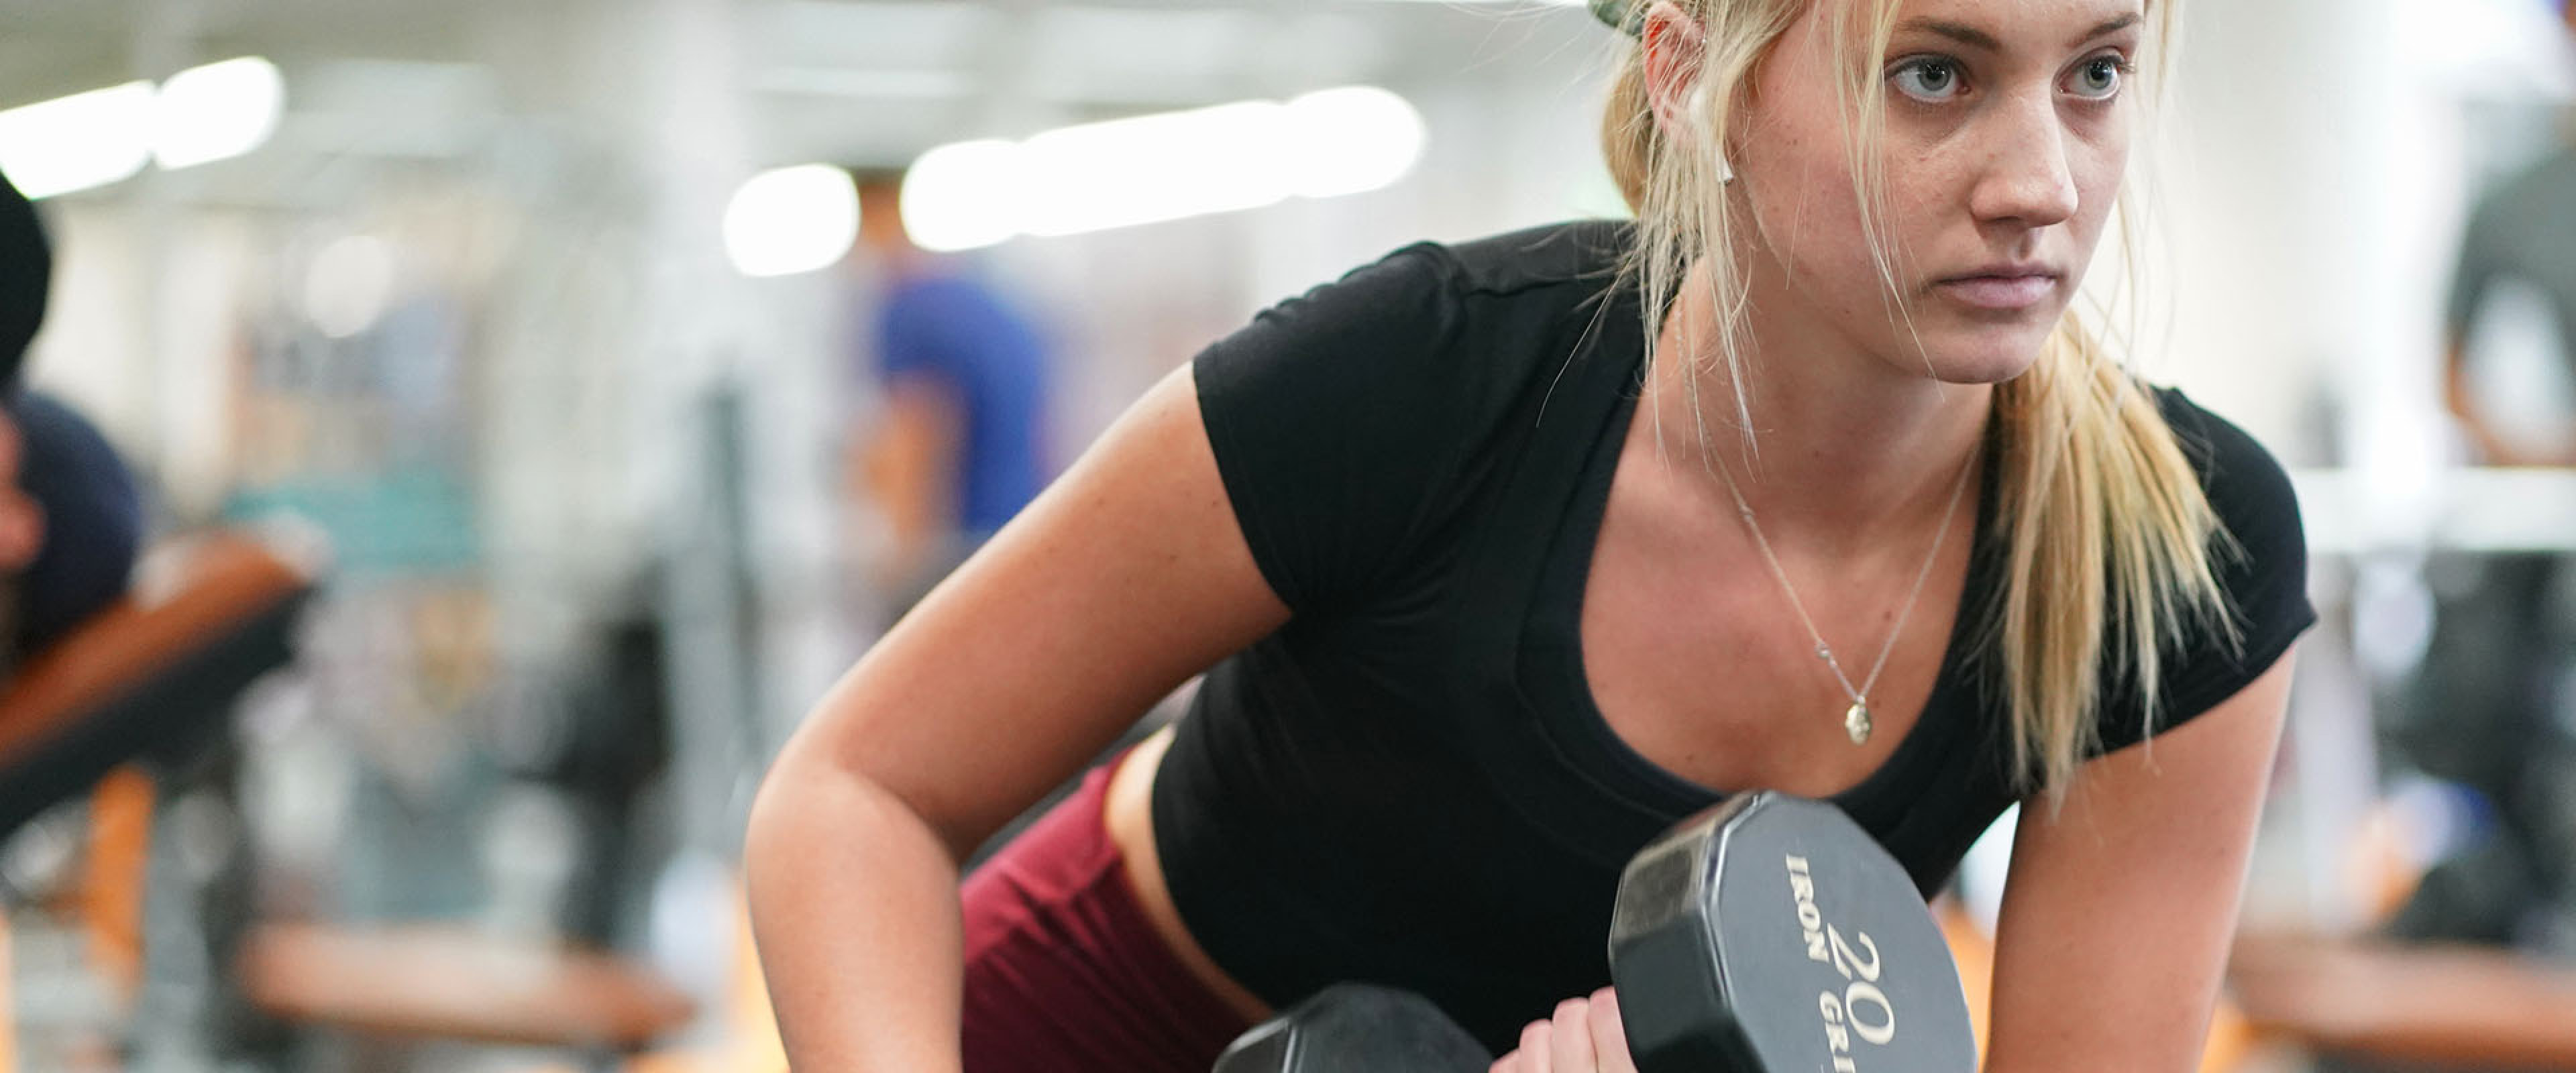 A WMU student lifting weights at the Student Rec Center